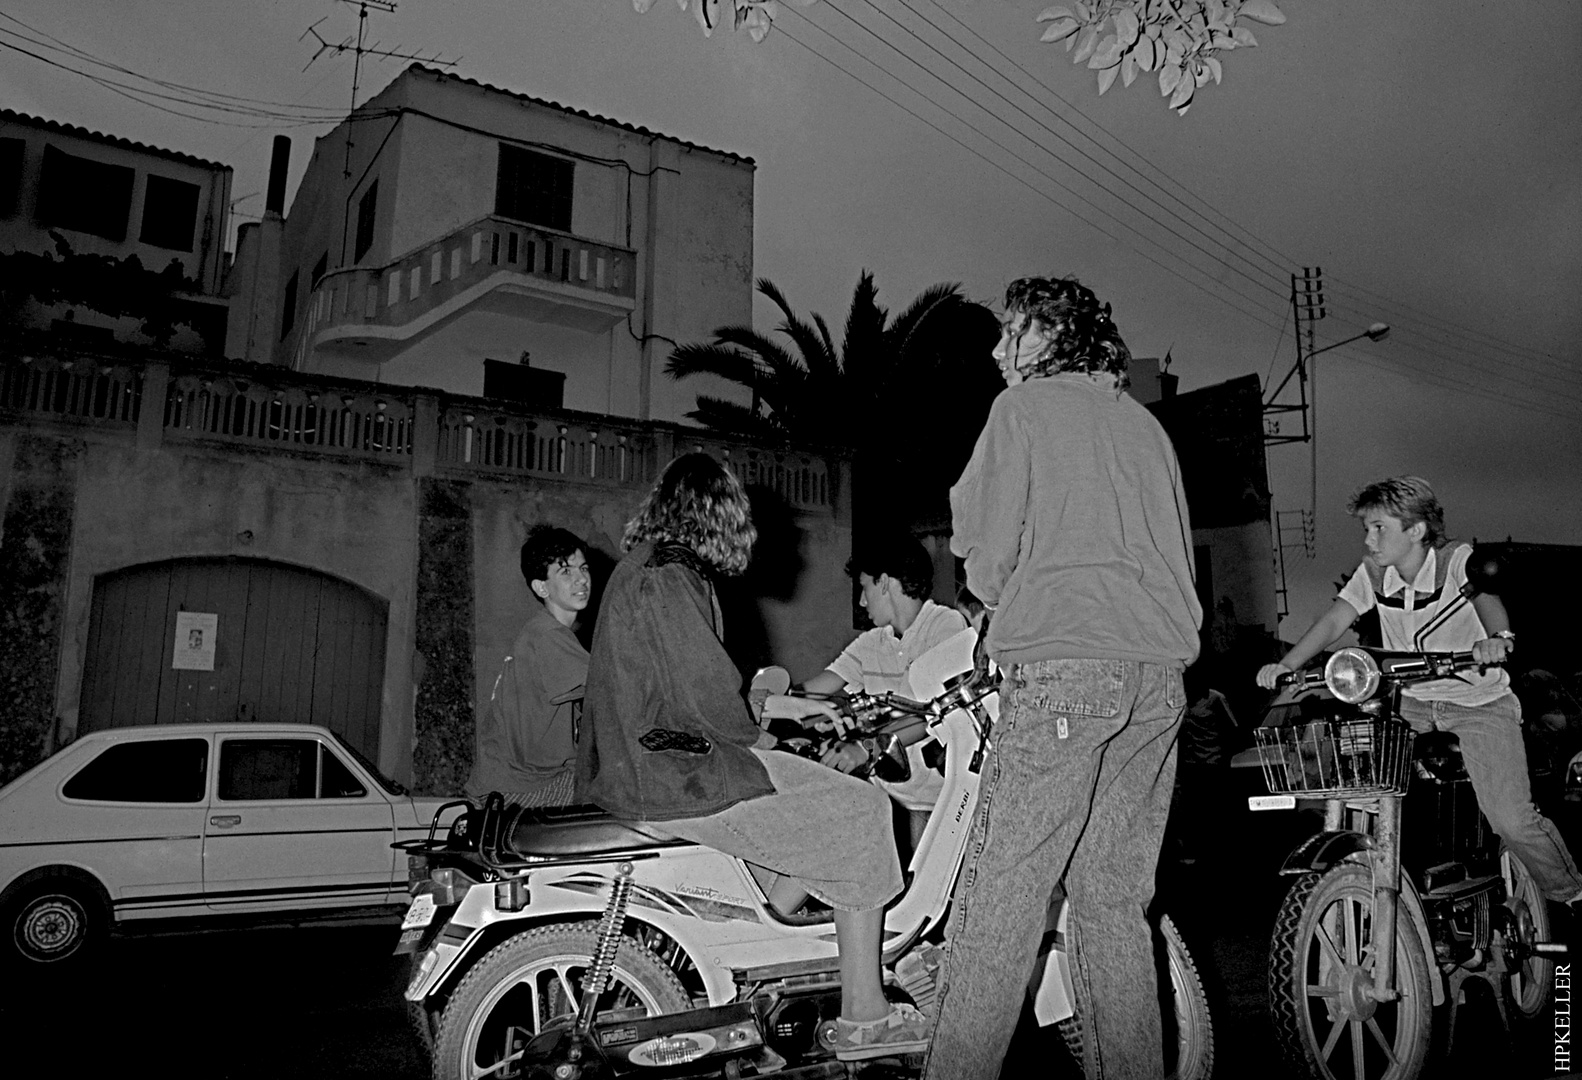 Many years ago in Cala Figuera (Mallorca), ...moped enthusiastic young people - Analogscan 1983.